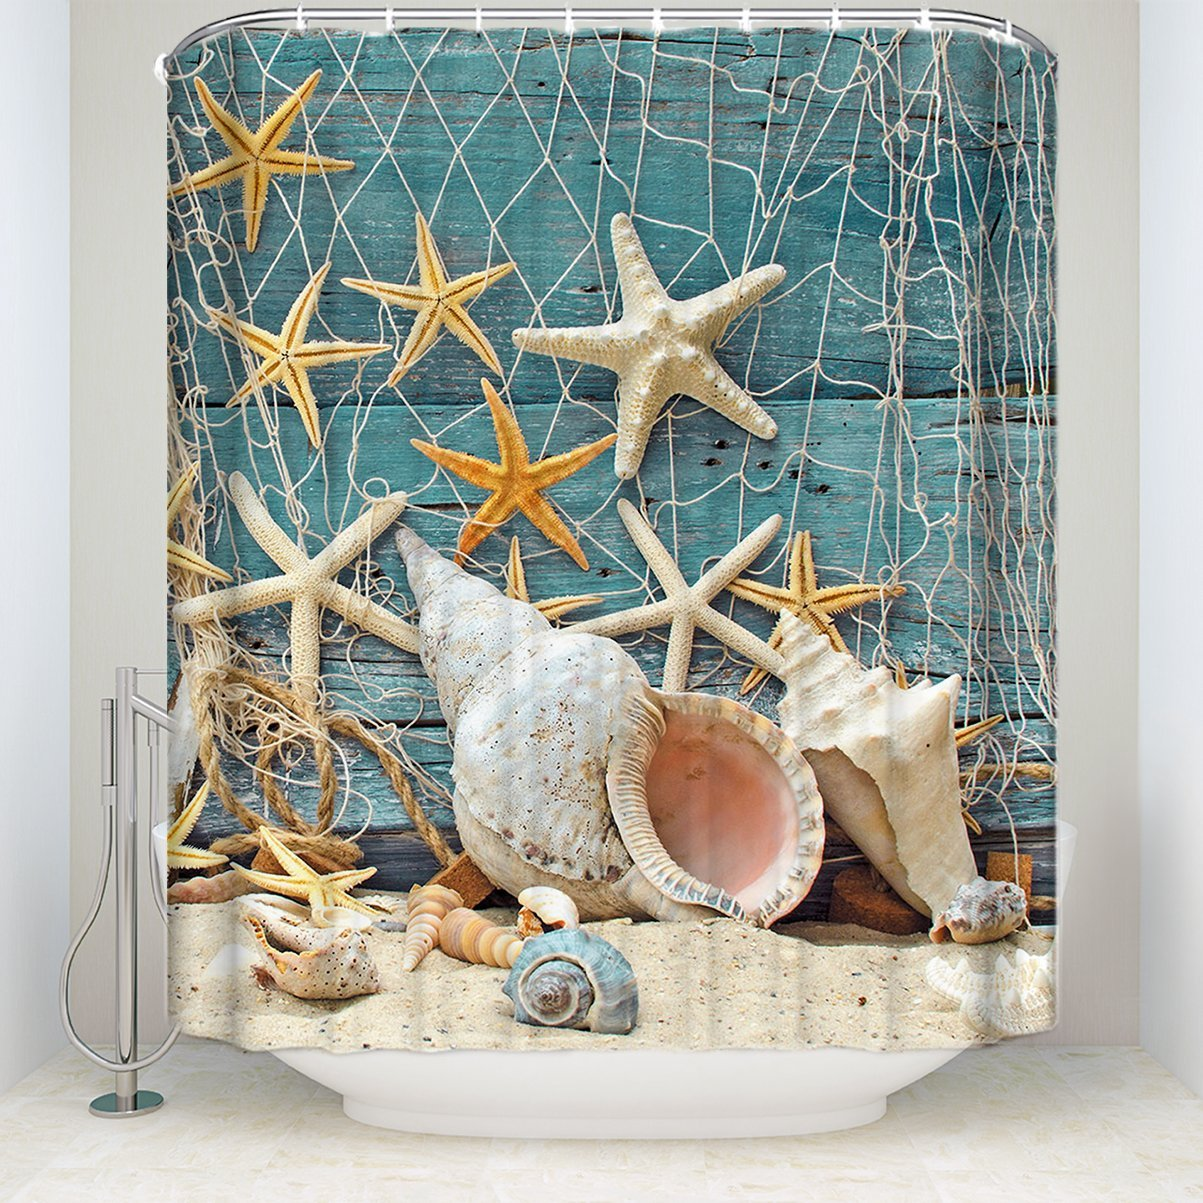 Bathroom Supplies Accessories Sea Shell Starfish Fishing